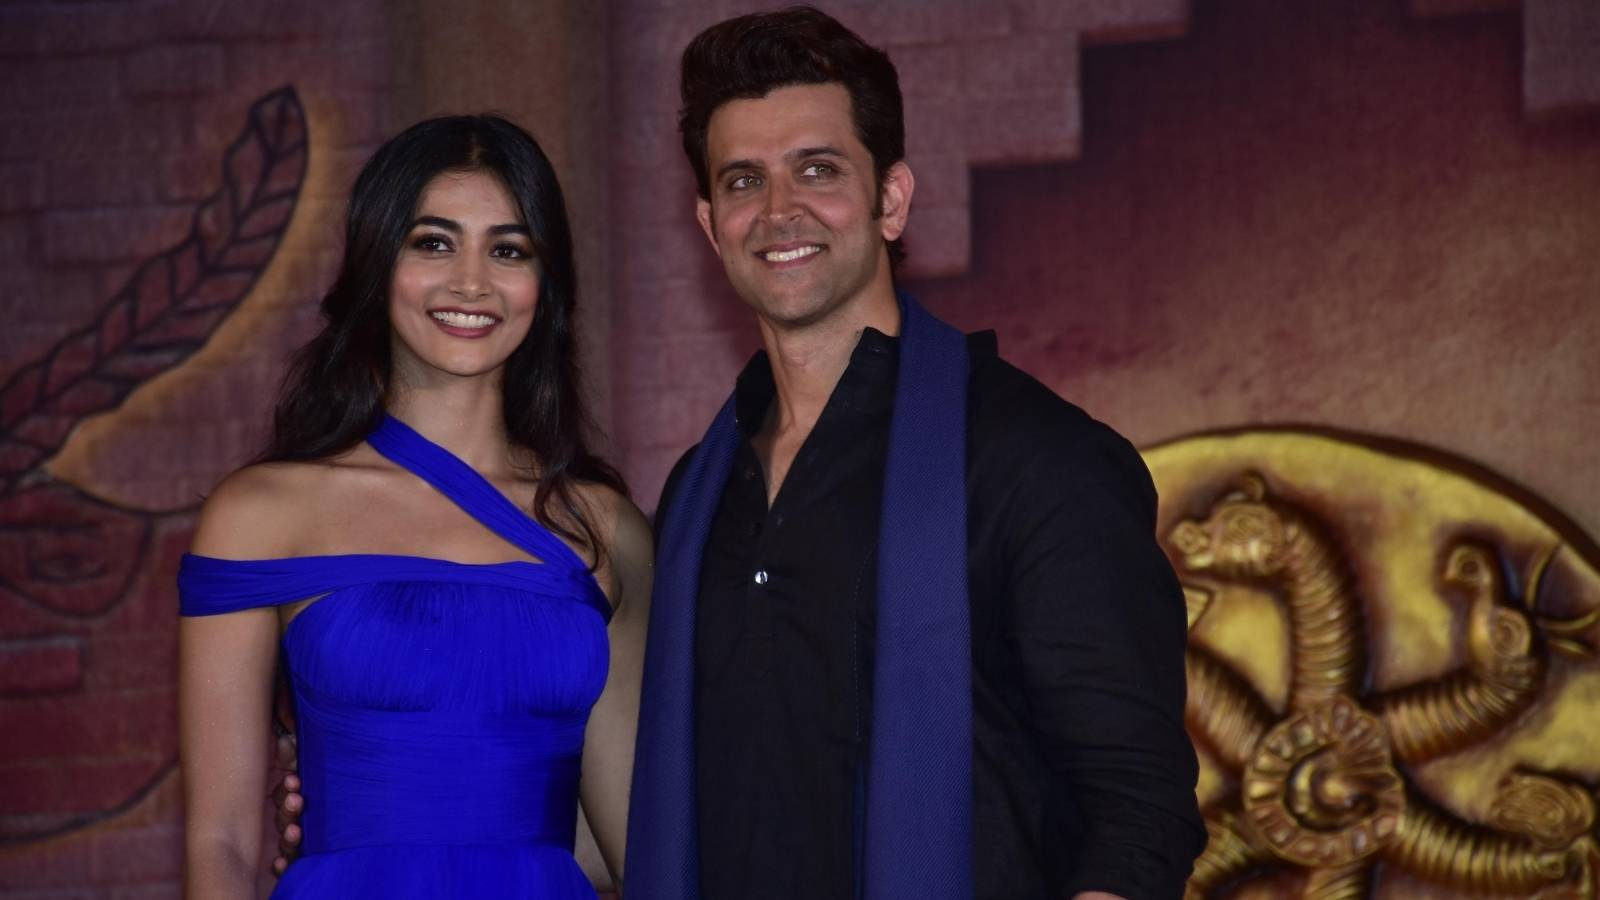 Pooja and Hrithik